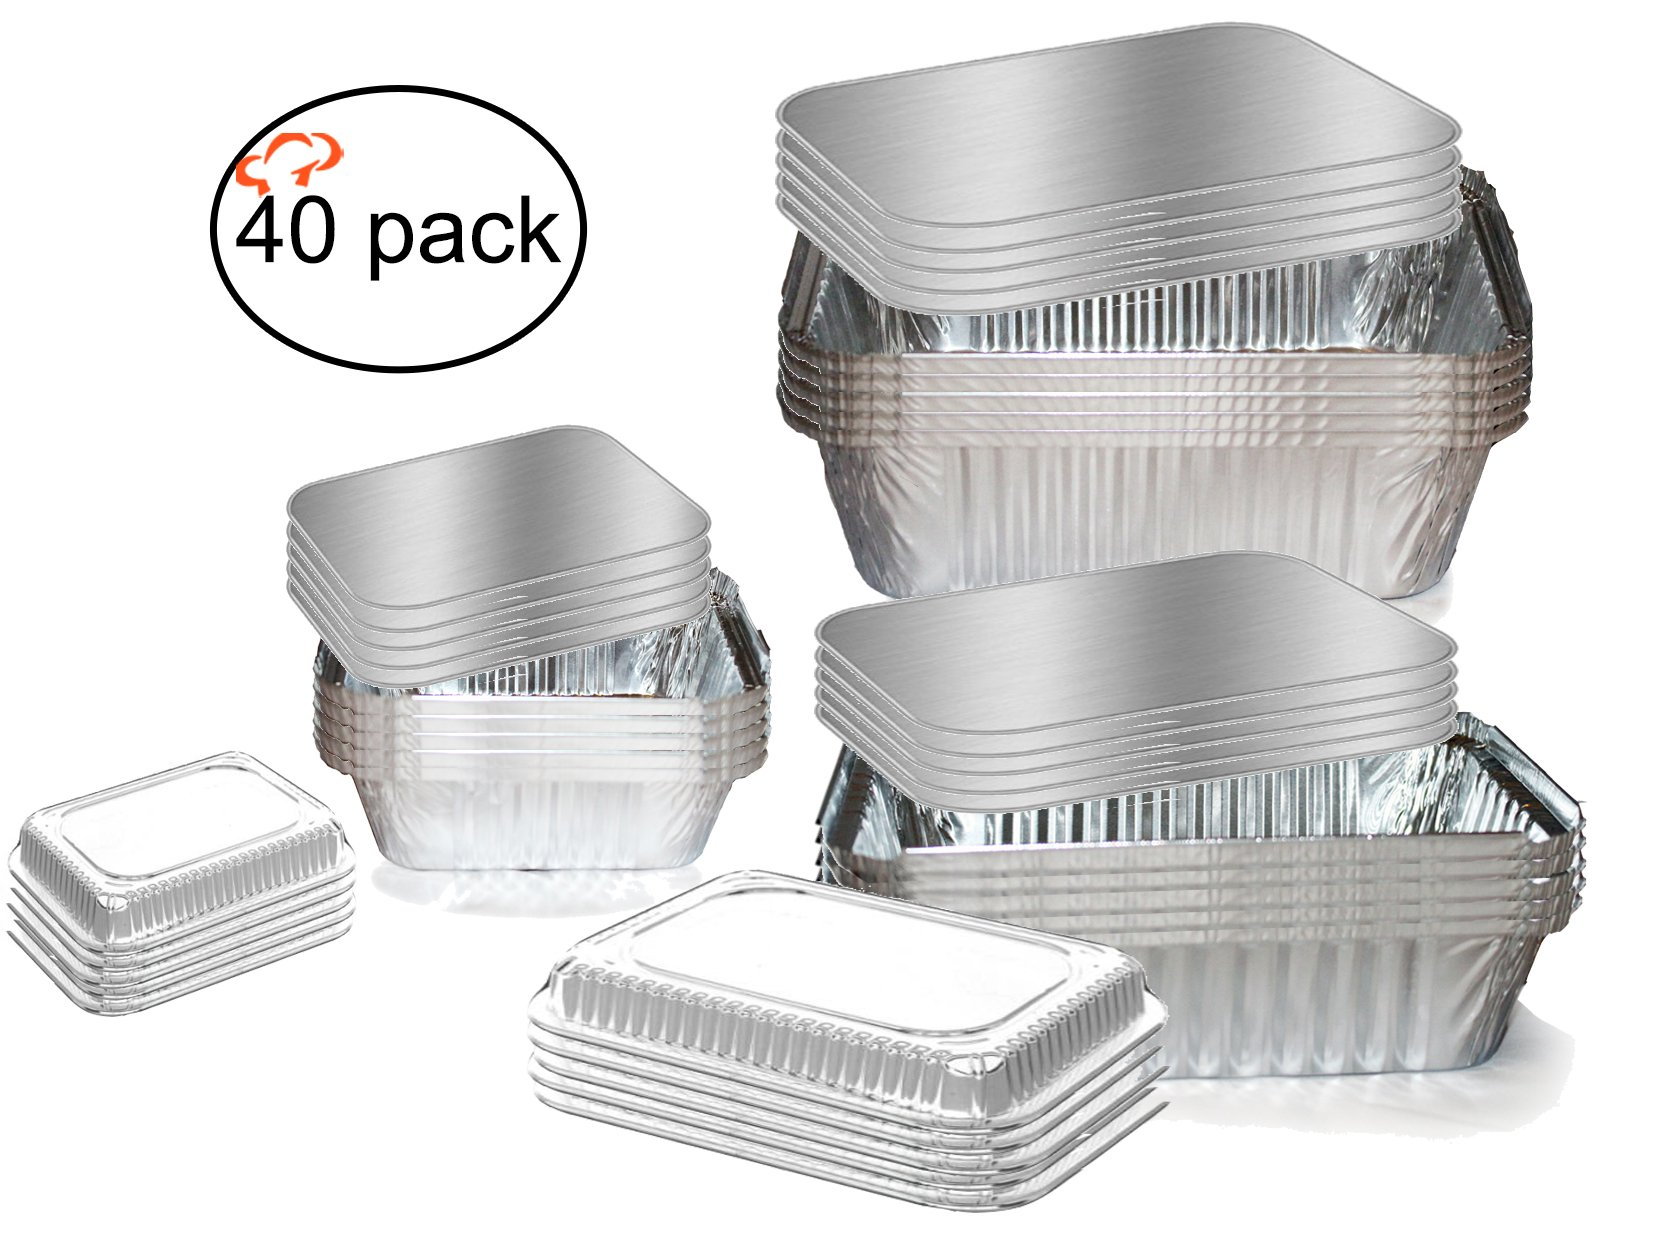 Tiger Chef Oblong Aluminum Tin Foil Pan Set Includes: 5 1lbs Pans With Clear Dome And Board Lids, 5 2.25 lbs. Pans With Clear Dome And Board Lids, 5 5lbs. Pans With Board Lids - 40 Pack